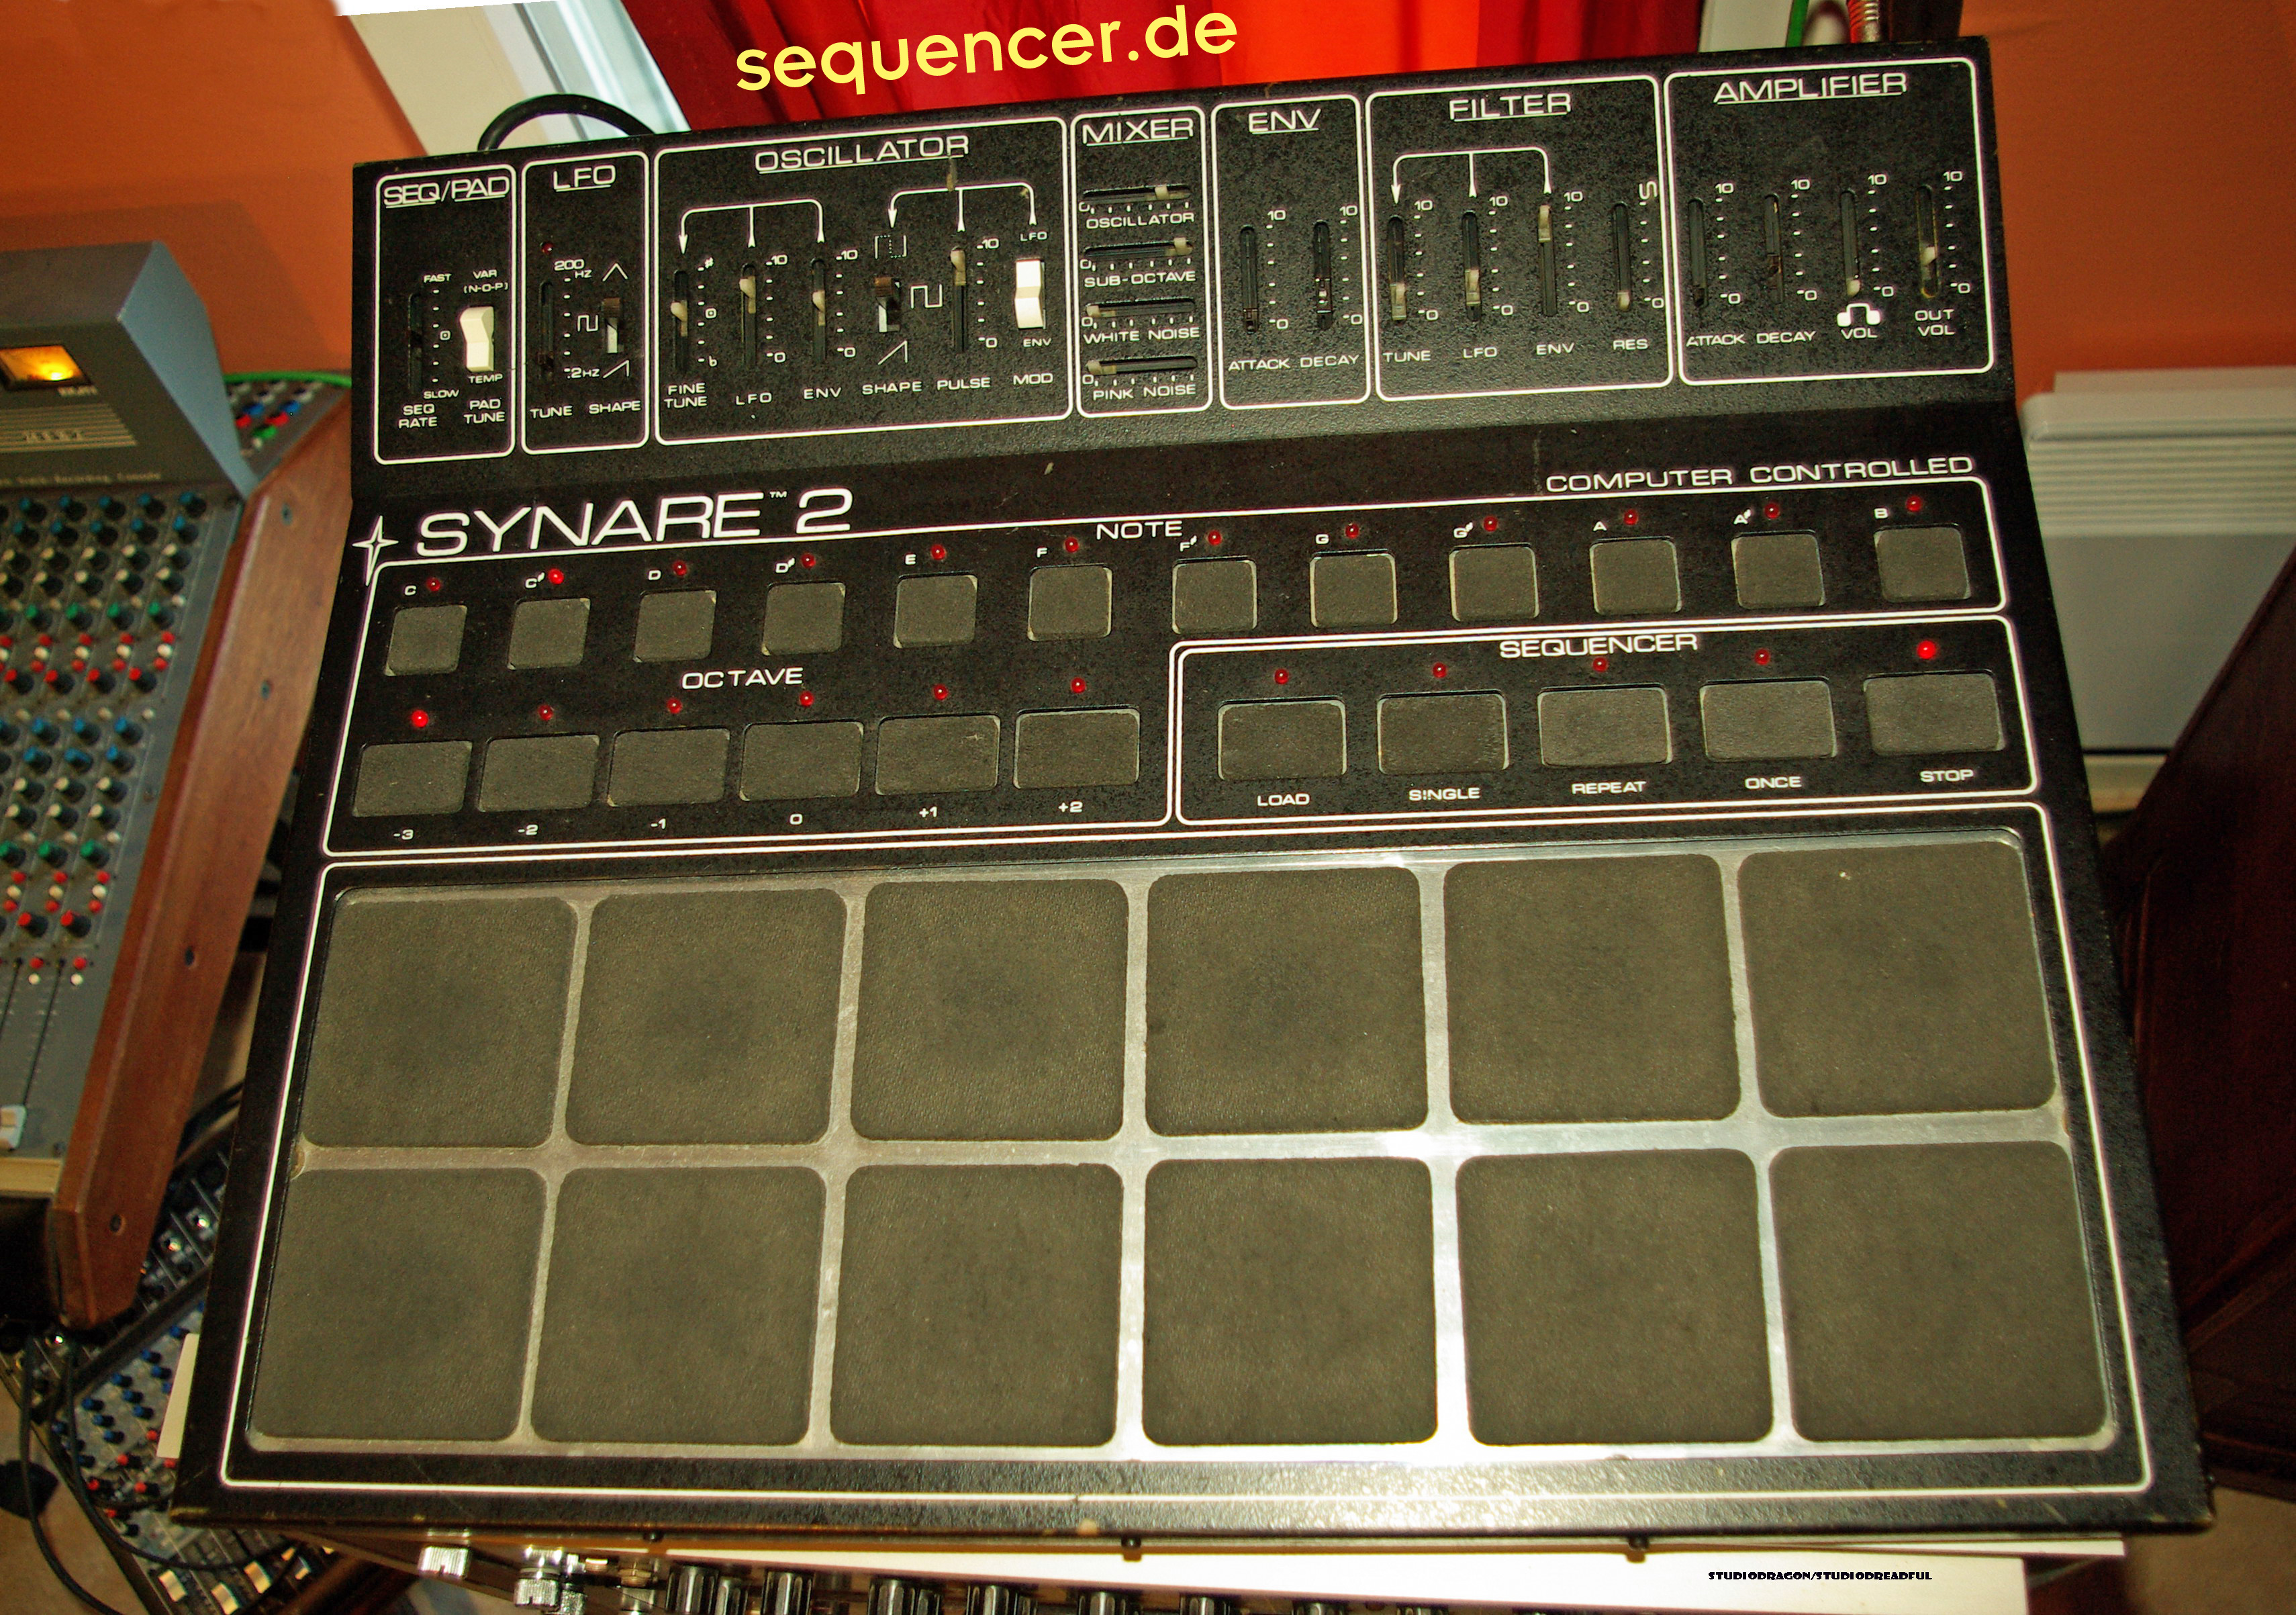 Star Instruments Synare 2 synthesizer